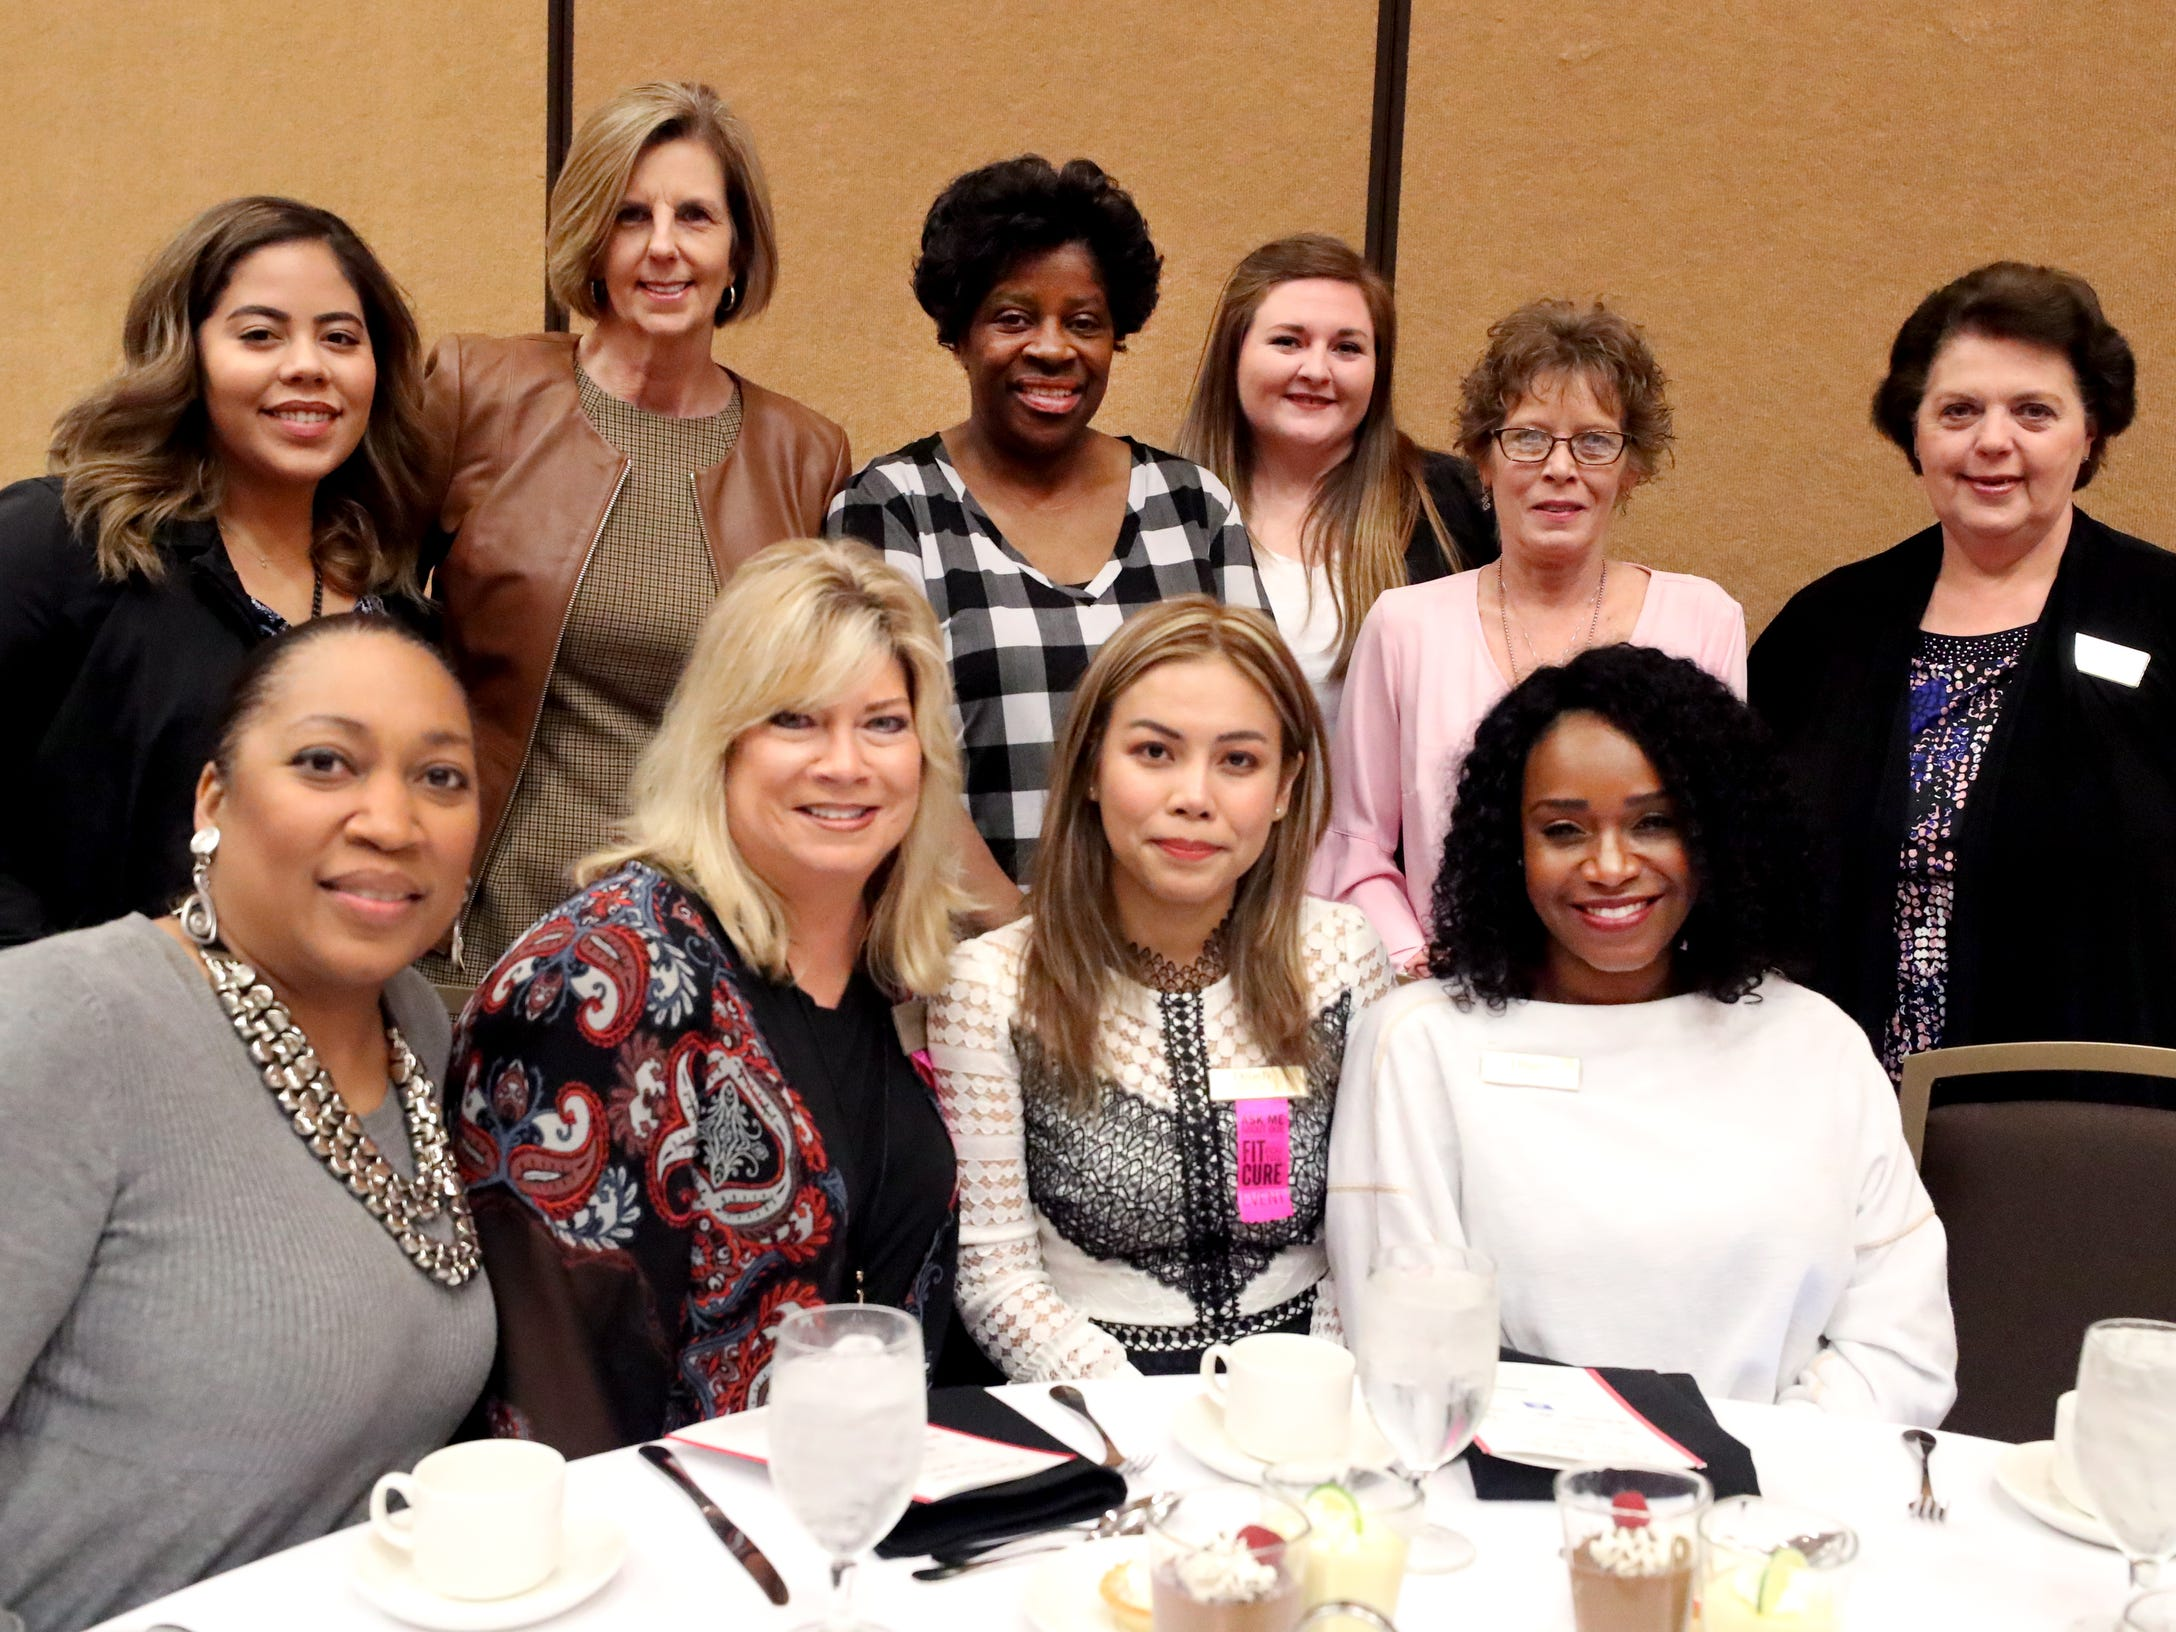 The Dillard's table M at Murfreesboro Magazine's 2019 Women in Business Luncheon on Tuesday, March 12, 2019, at the Embassy Suites Murfreesboro.